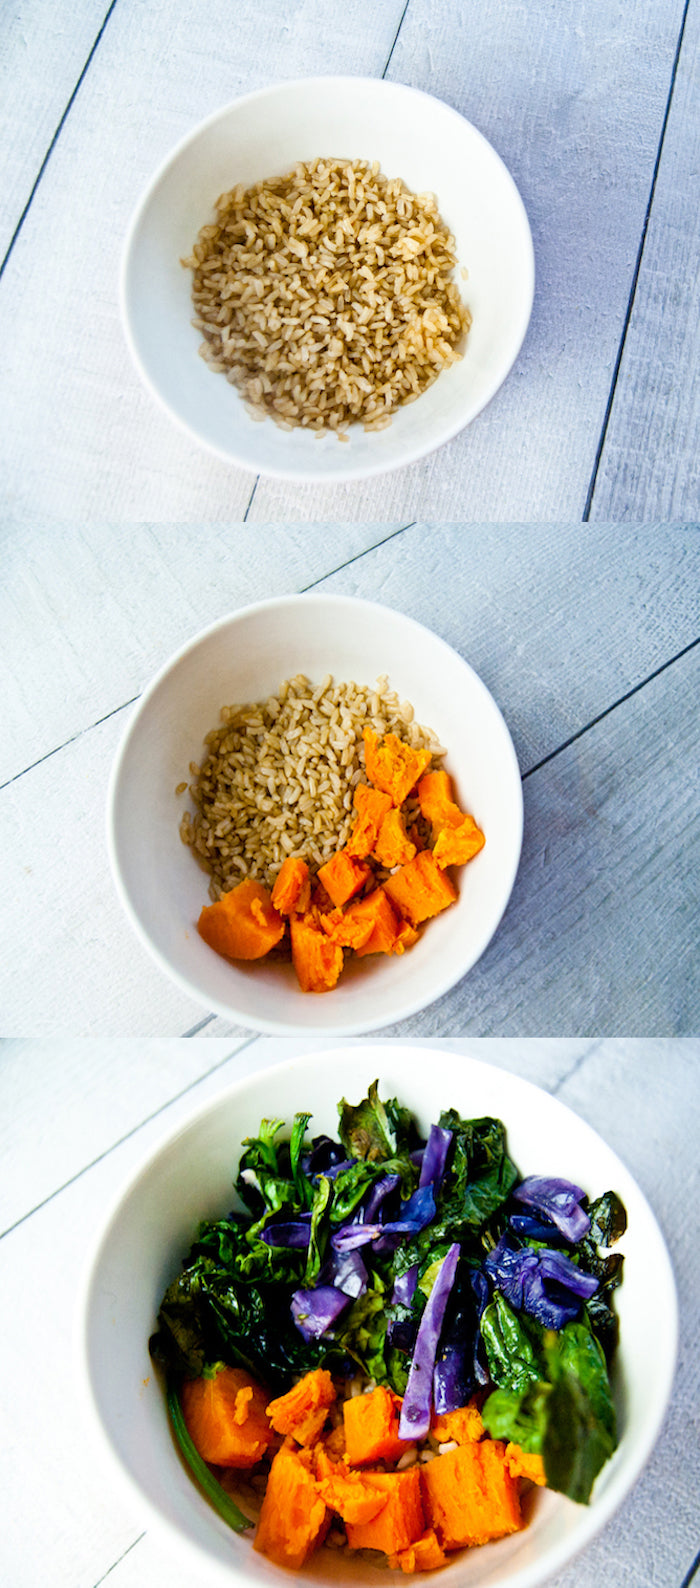 protein bowls, protein bowl lunches, not sad desk lunches, quick lunches, healthy lunches, sweet potatoes, red cabbage, brown rice, macrobowl, buddha bowl, nutrient bowls